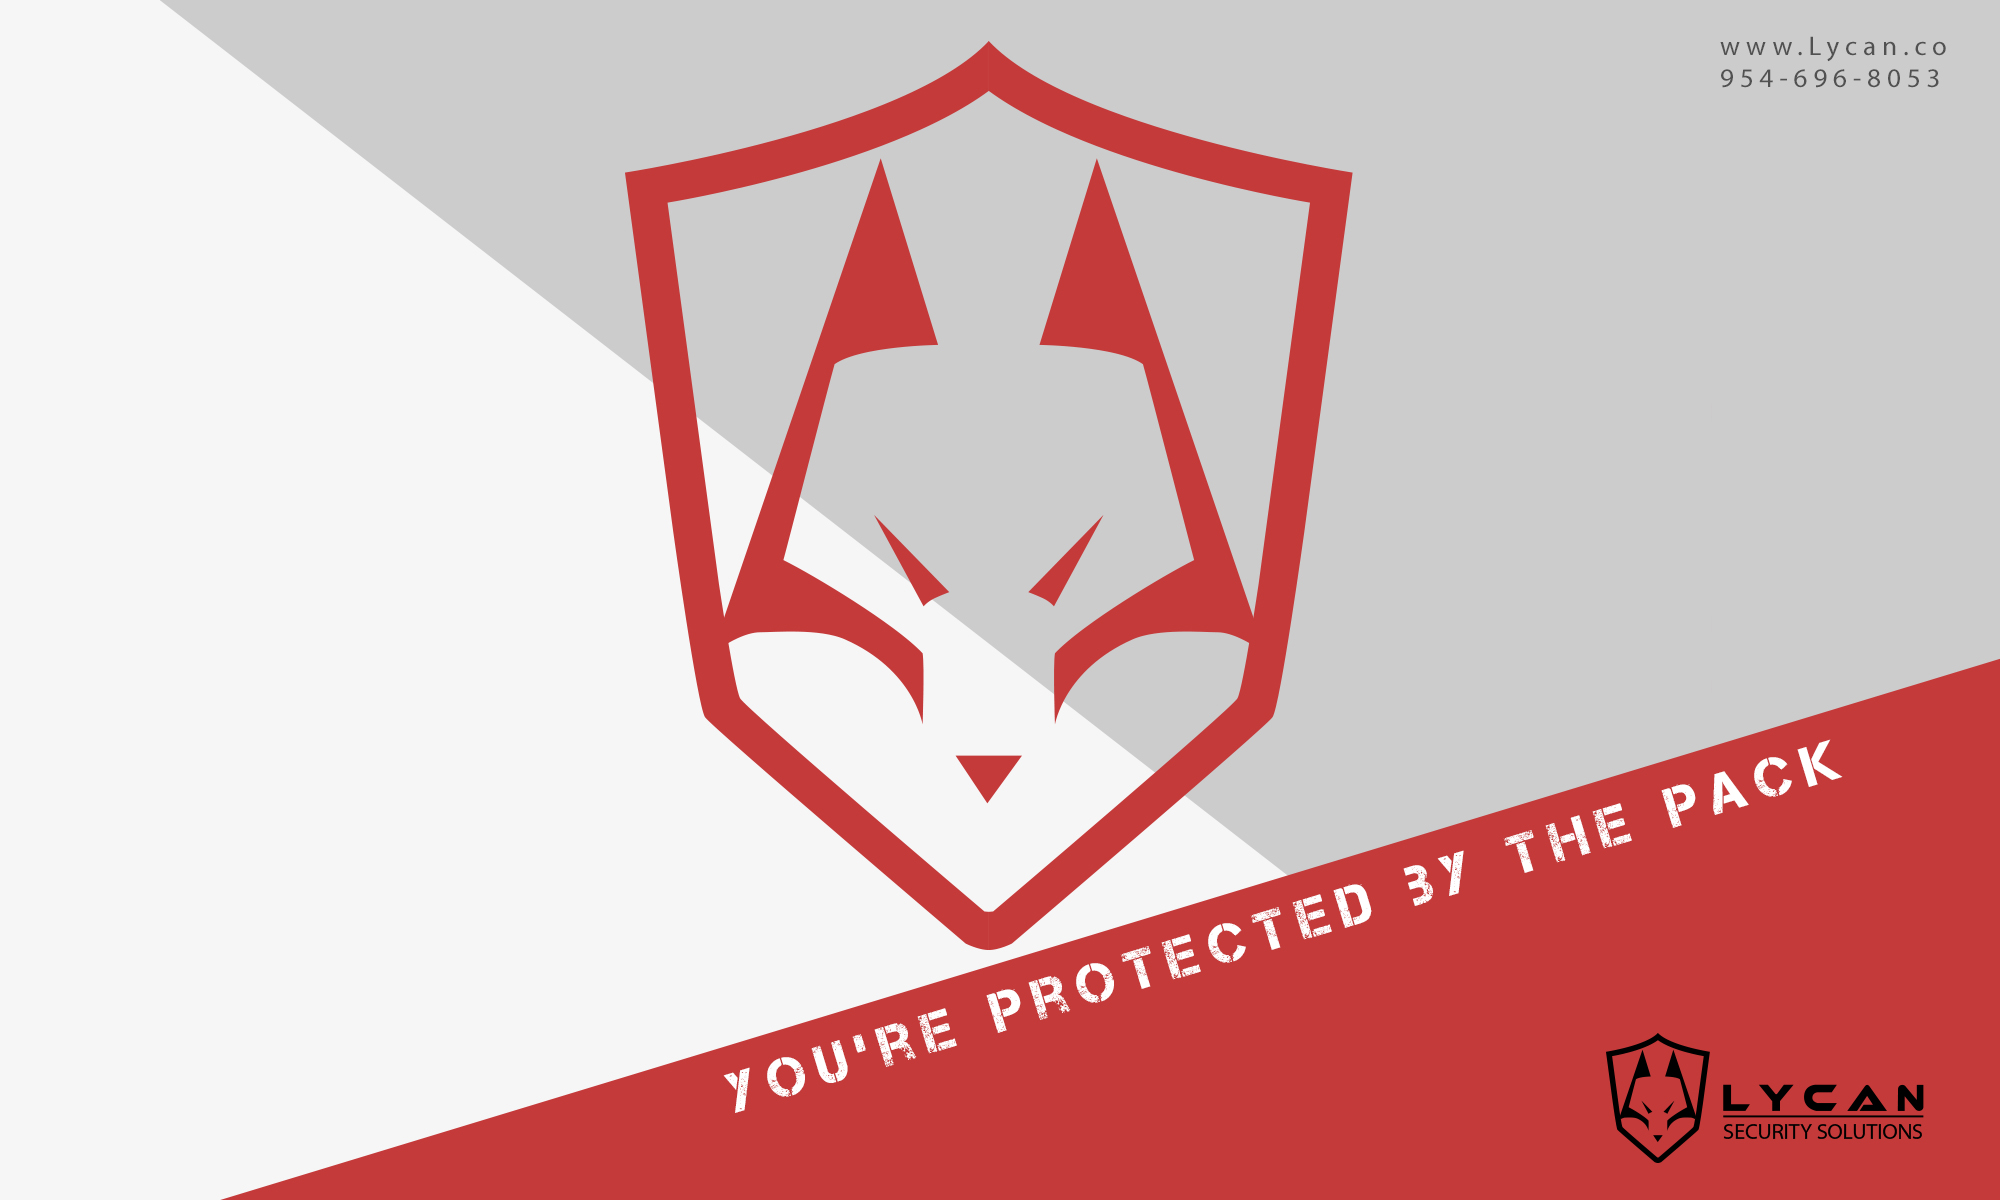 Lycan Security Solutions